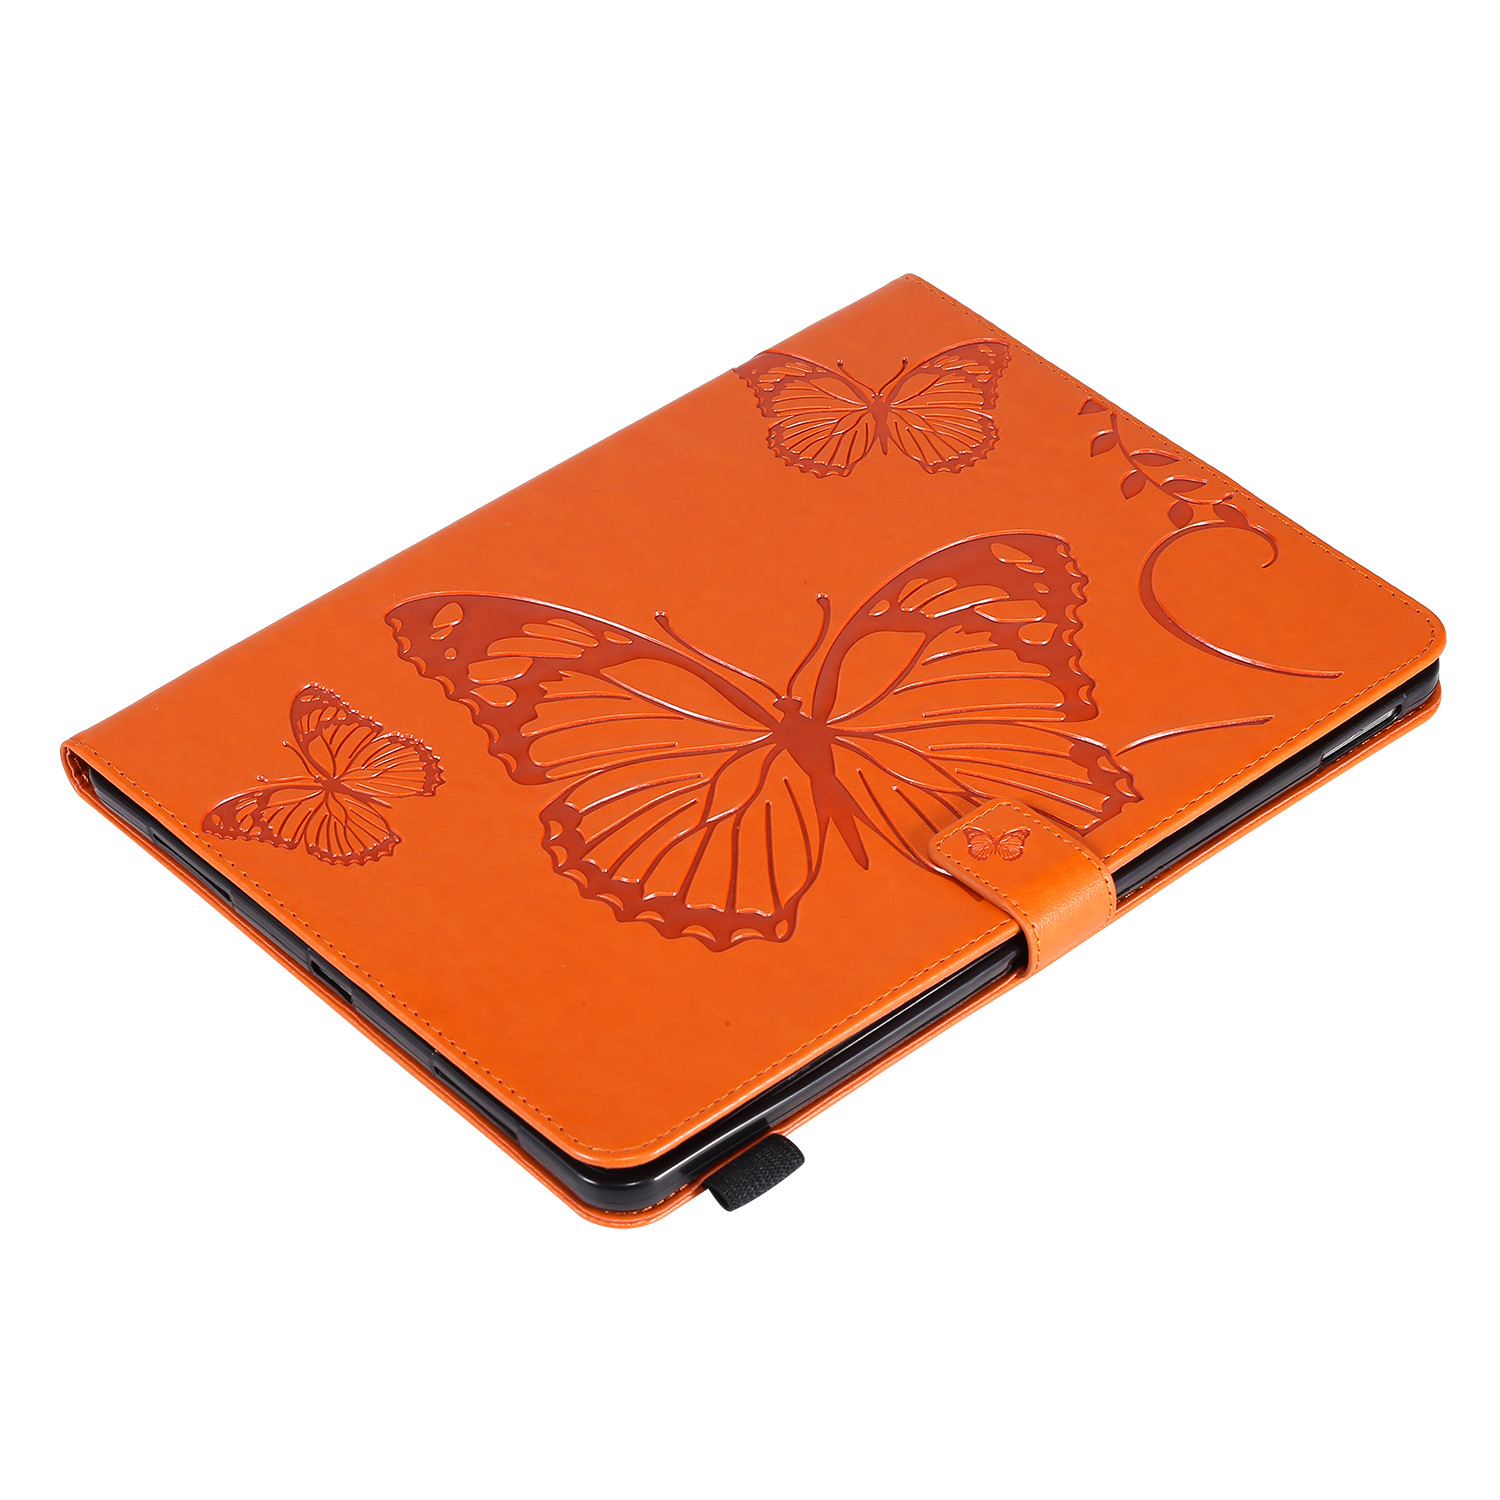 5 Yellow Butterfly Tablet Fundas For iPad Pro 12 9 Case 2020 2018 Folding Folio Embossed Cover For